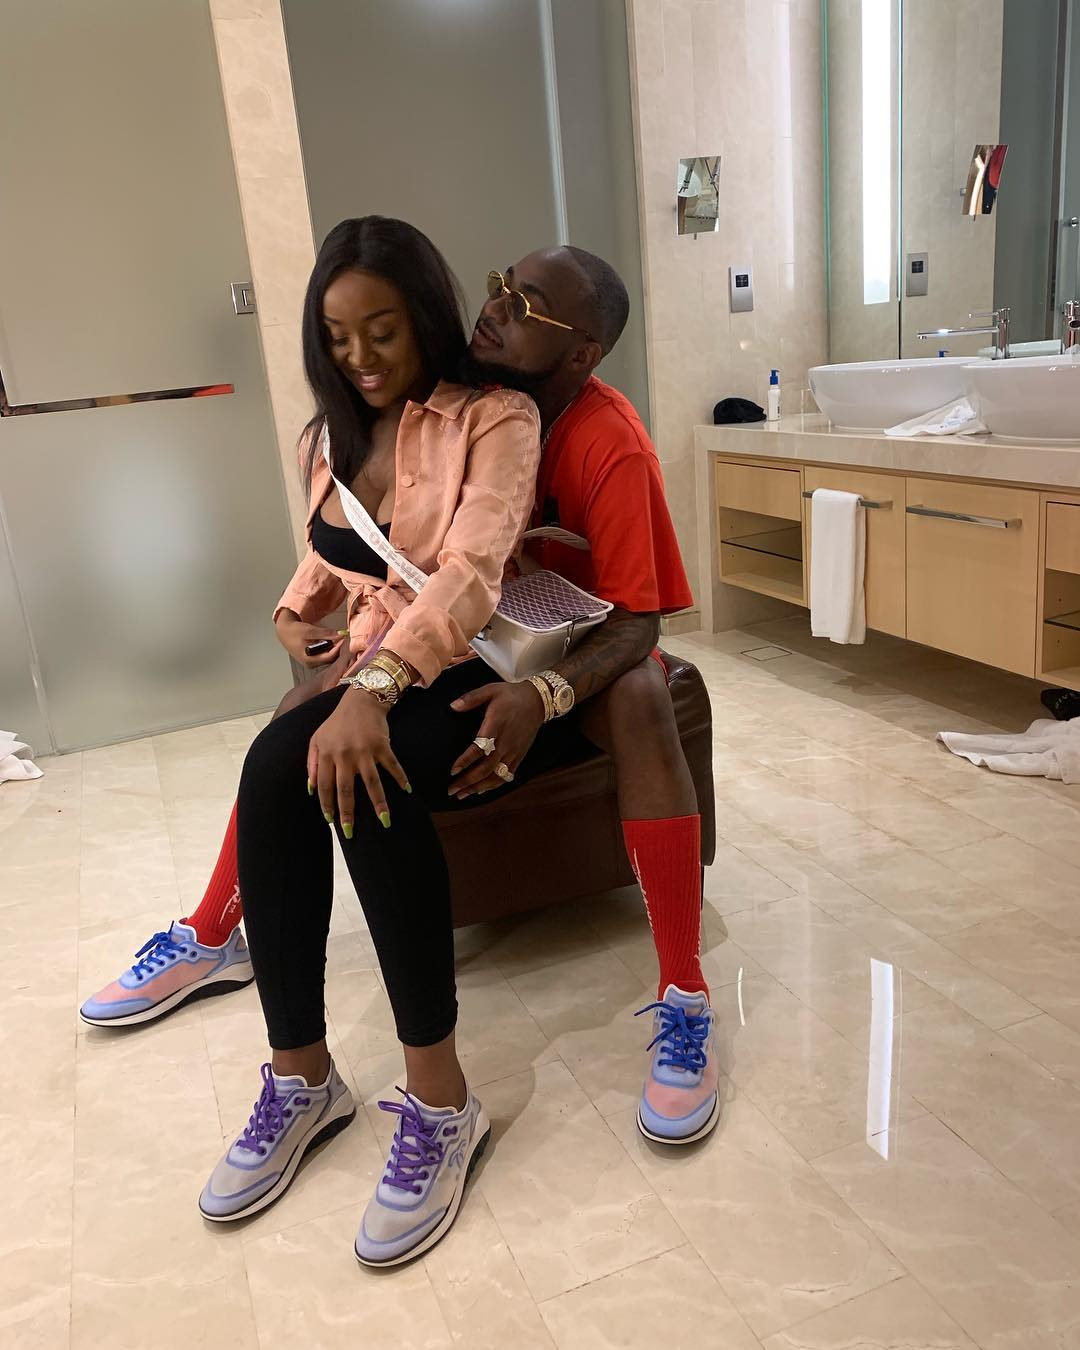 758af35a98d36d96f8808d0df48eeaaa - Timeline of Davido and Chioma Avril Rowland's relationship